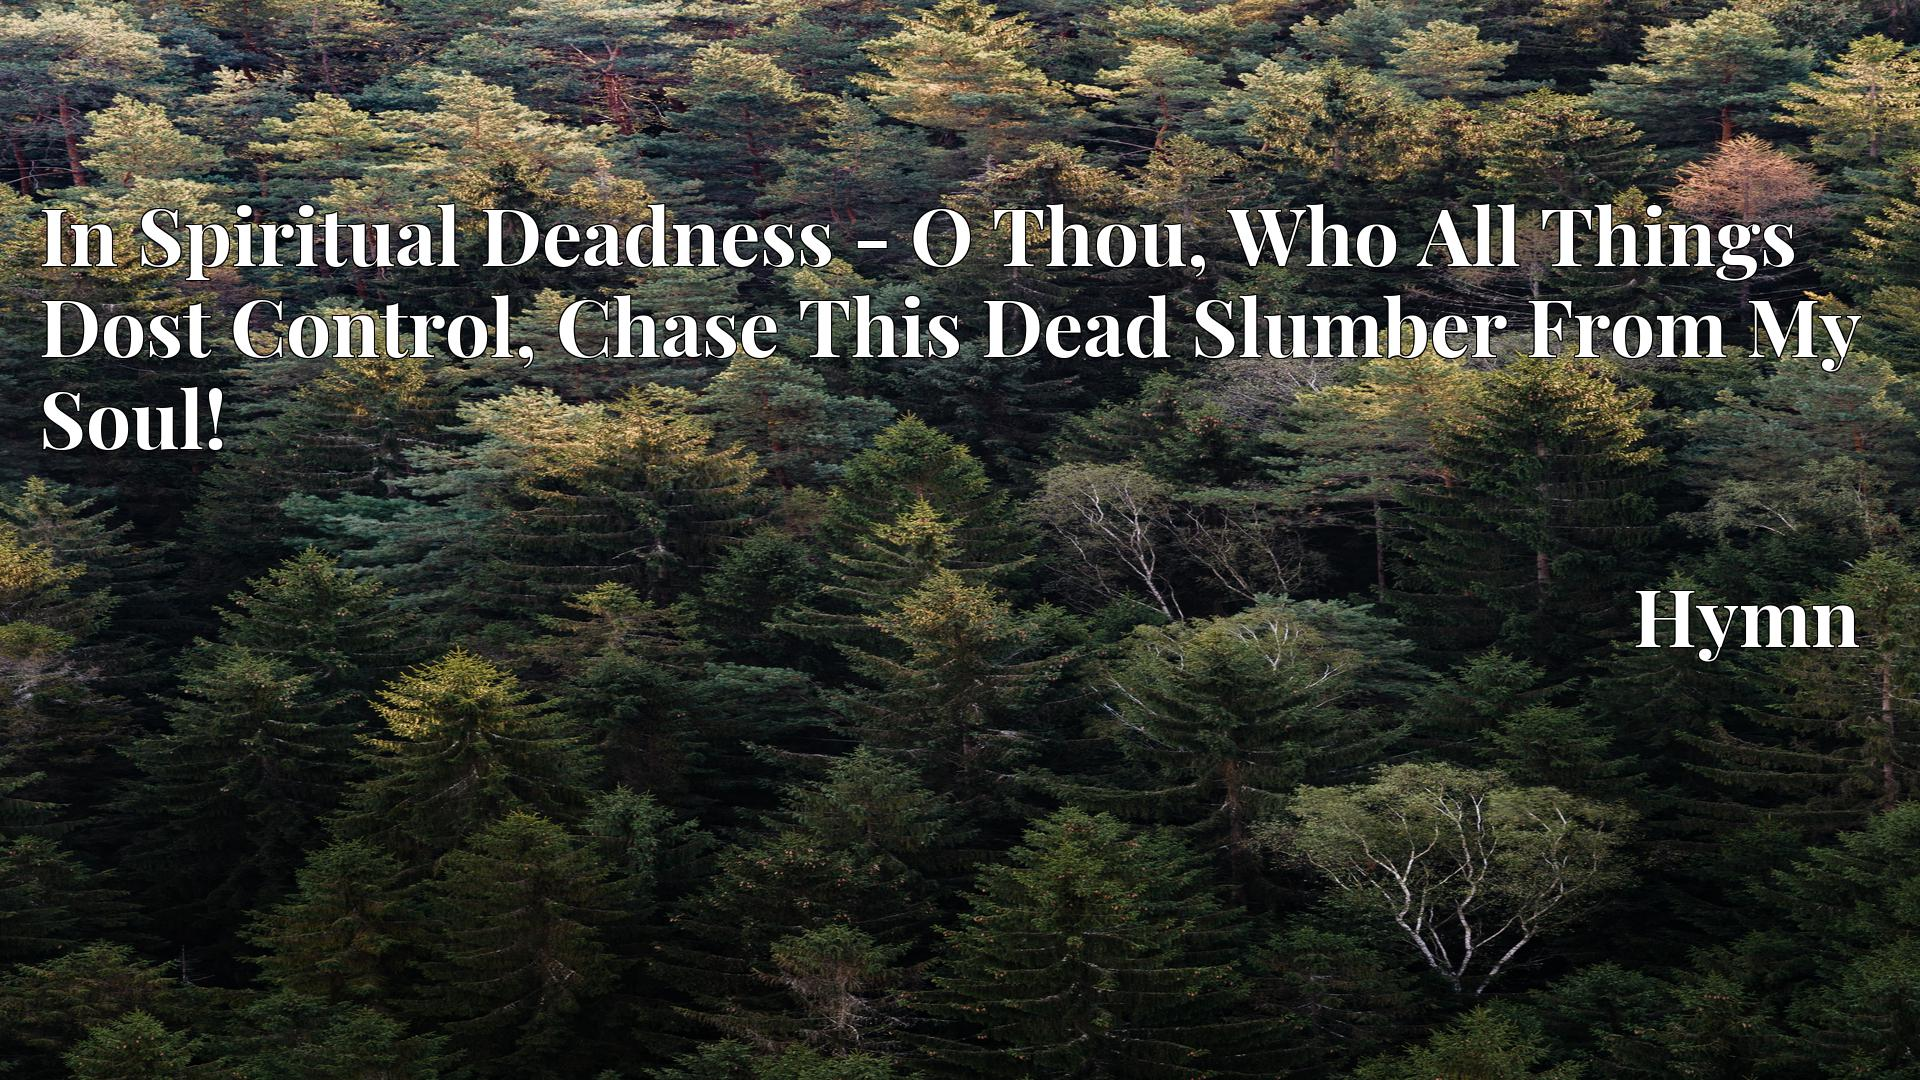 In Spiritual Deadness - O Thou, Who All Things Dost Control, Chase This Dead Slumber From My Soul! - Hymn